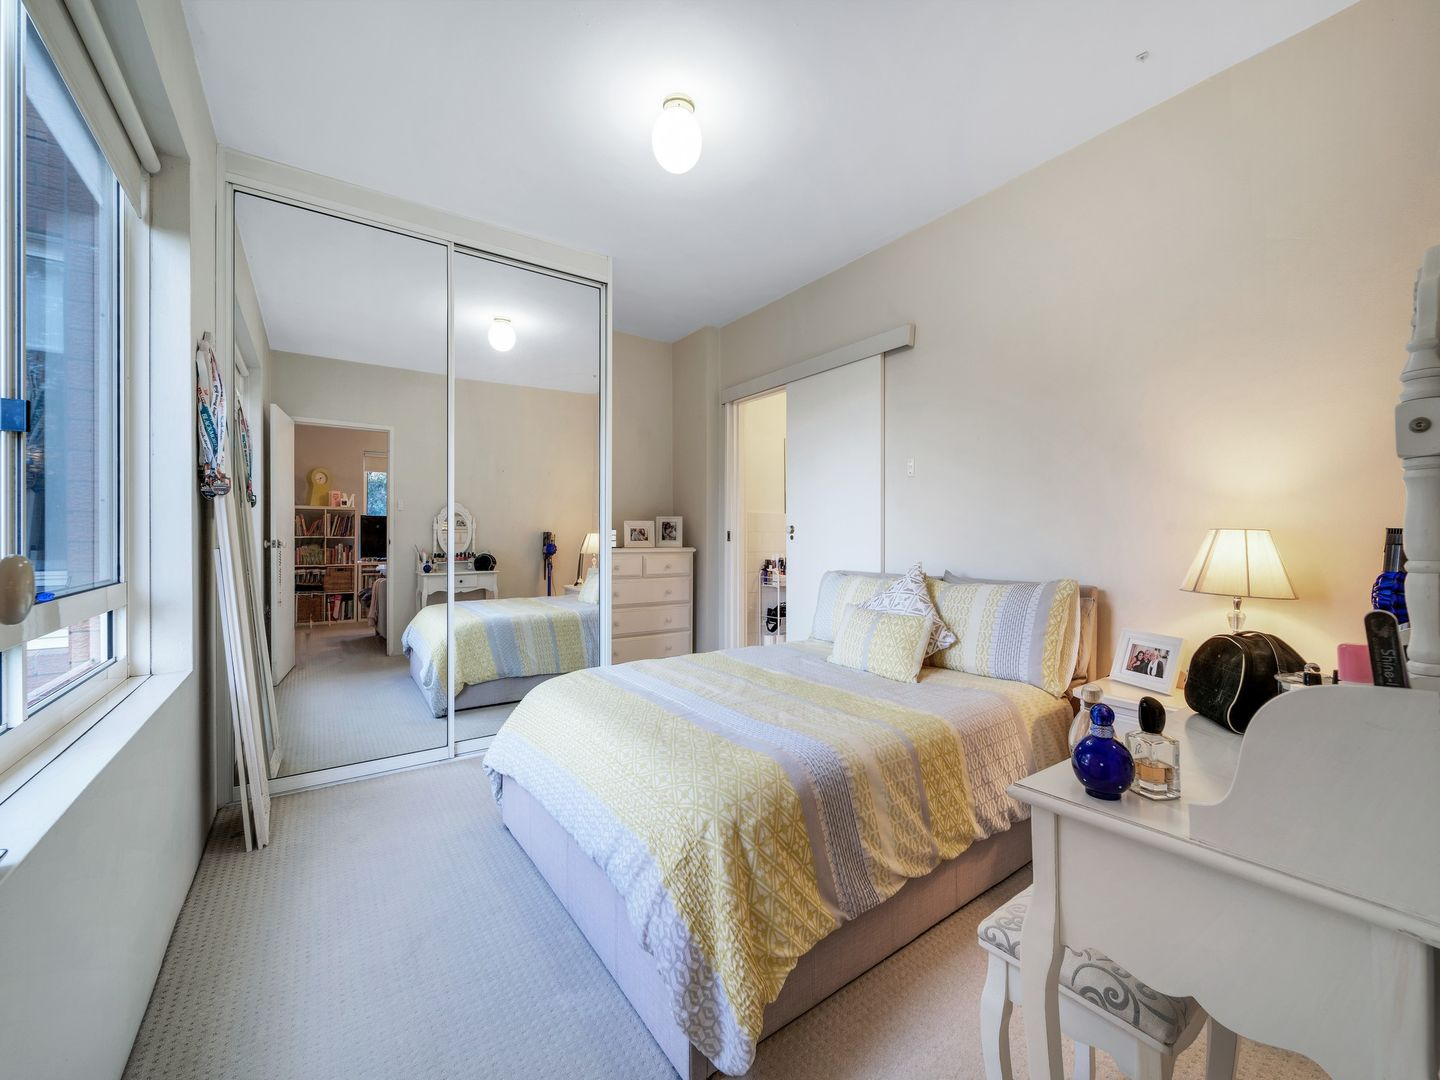 13/59 Lower Bent Street, Neutral Bay NSW 2089, Image 2